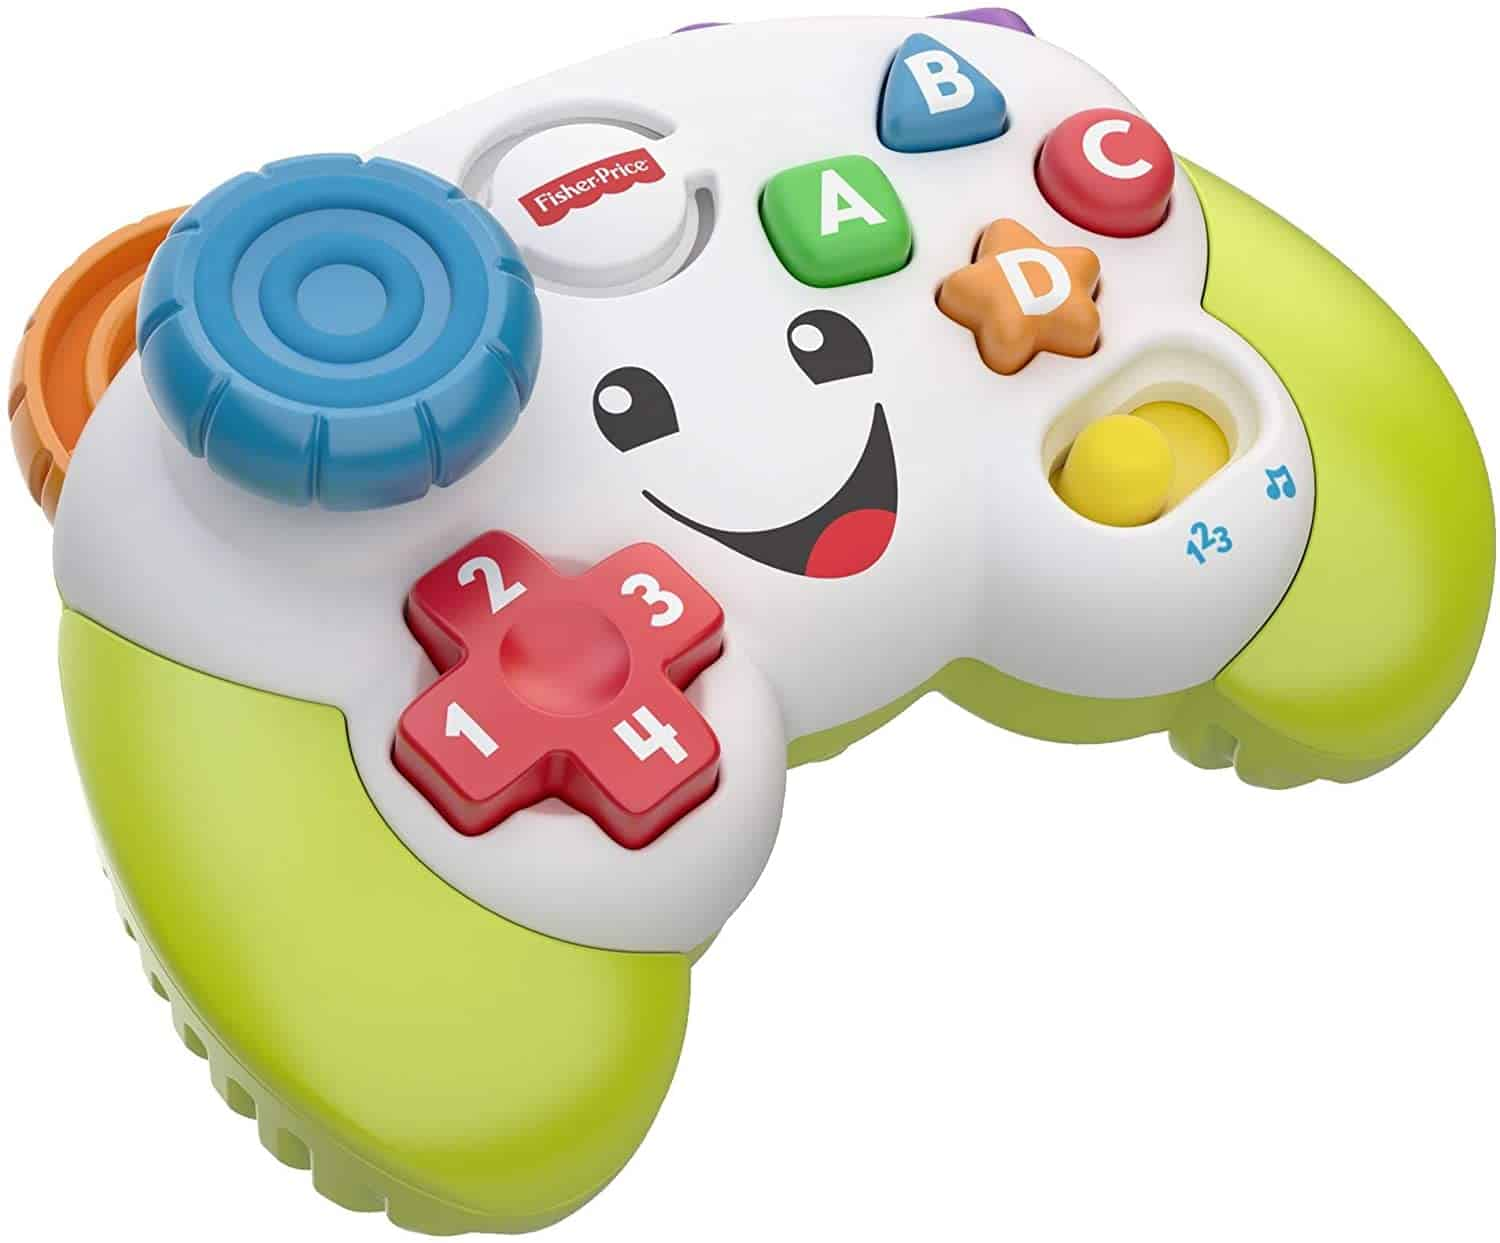 Fisher Price Game & Learn Controller - Toddler Review